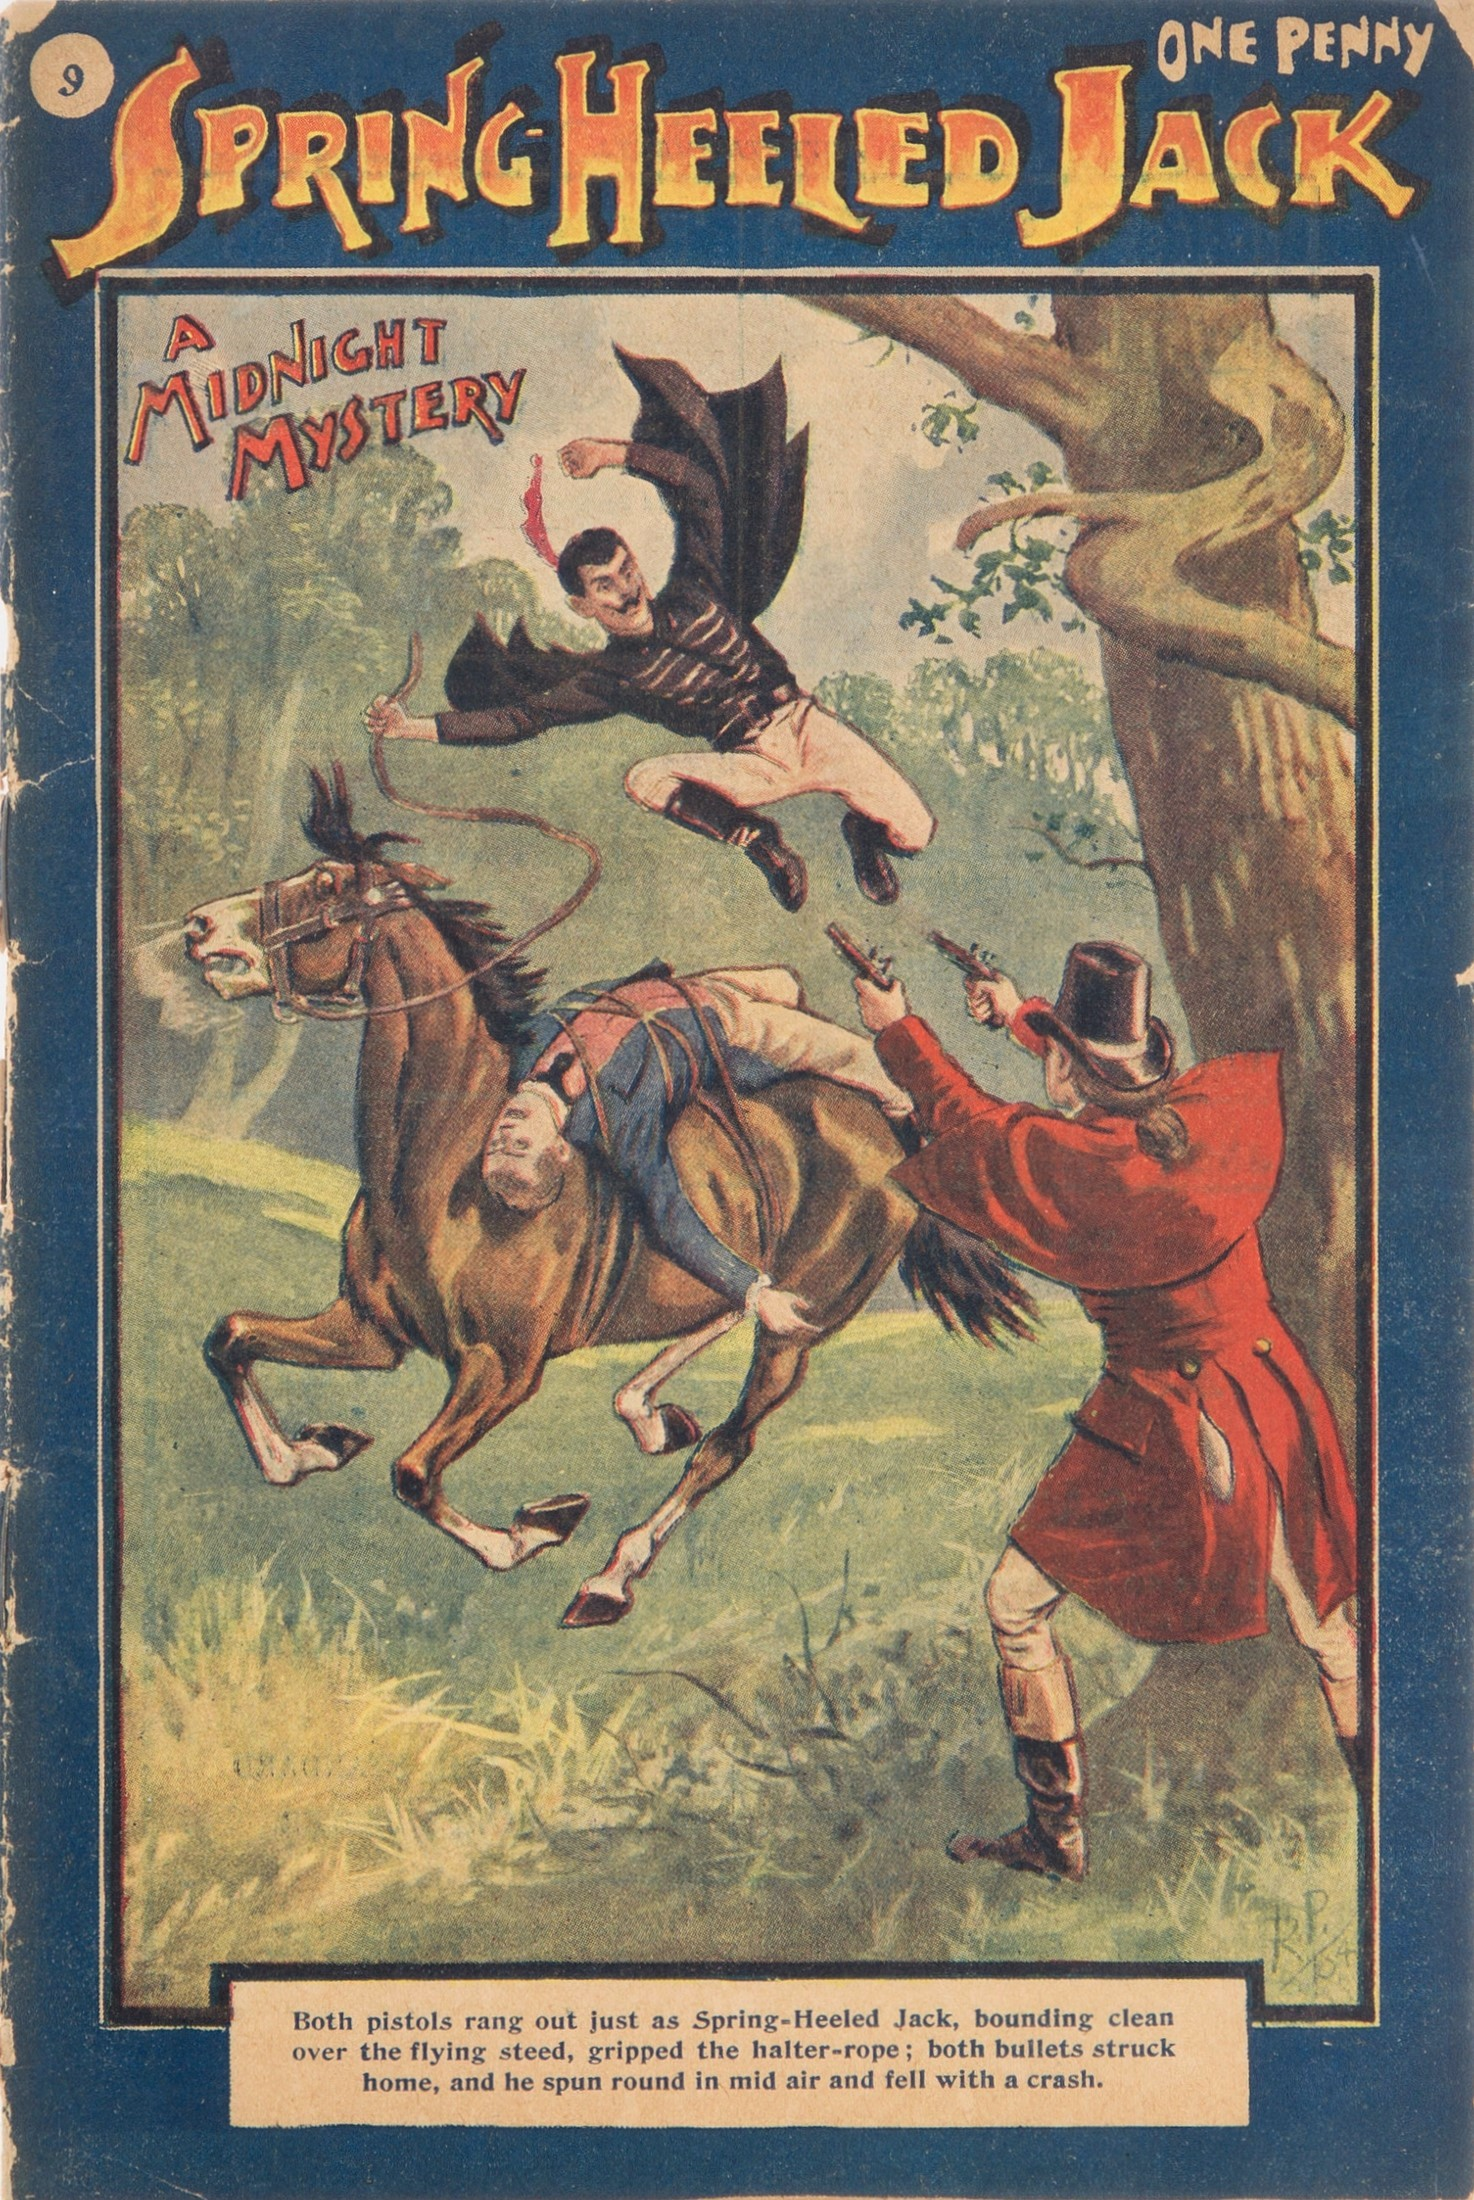 An image of Spring-heeled Jack on the cover of a penny dreadful.